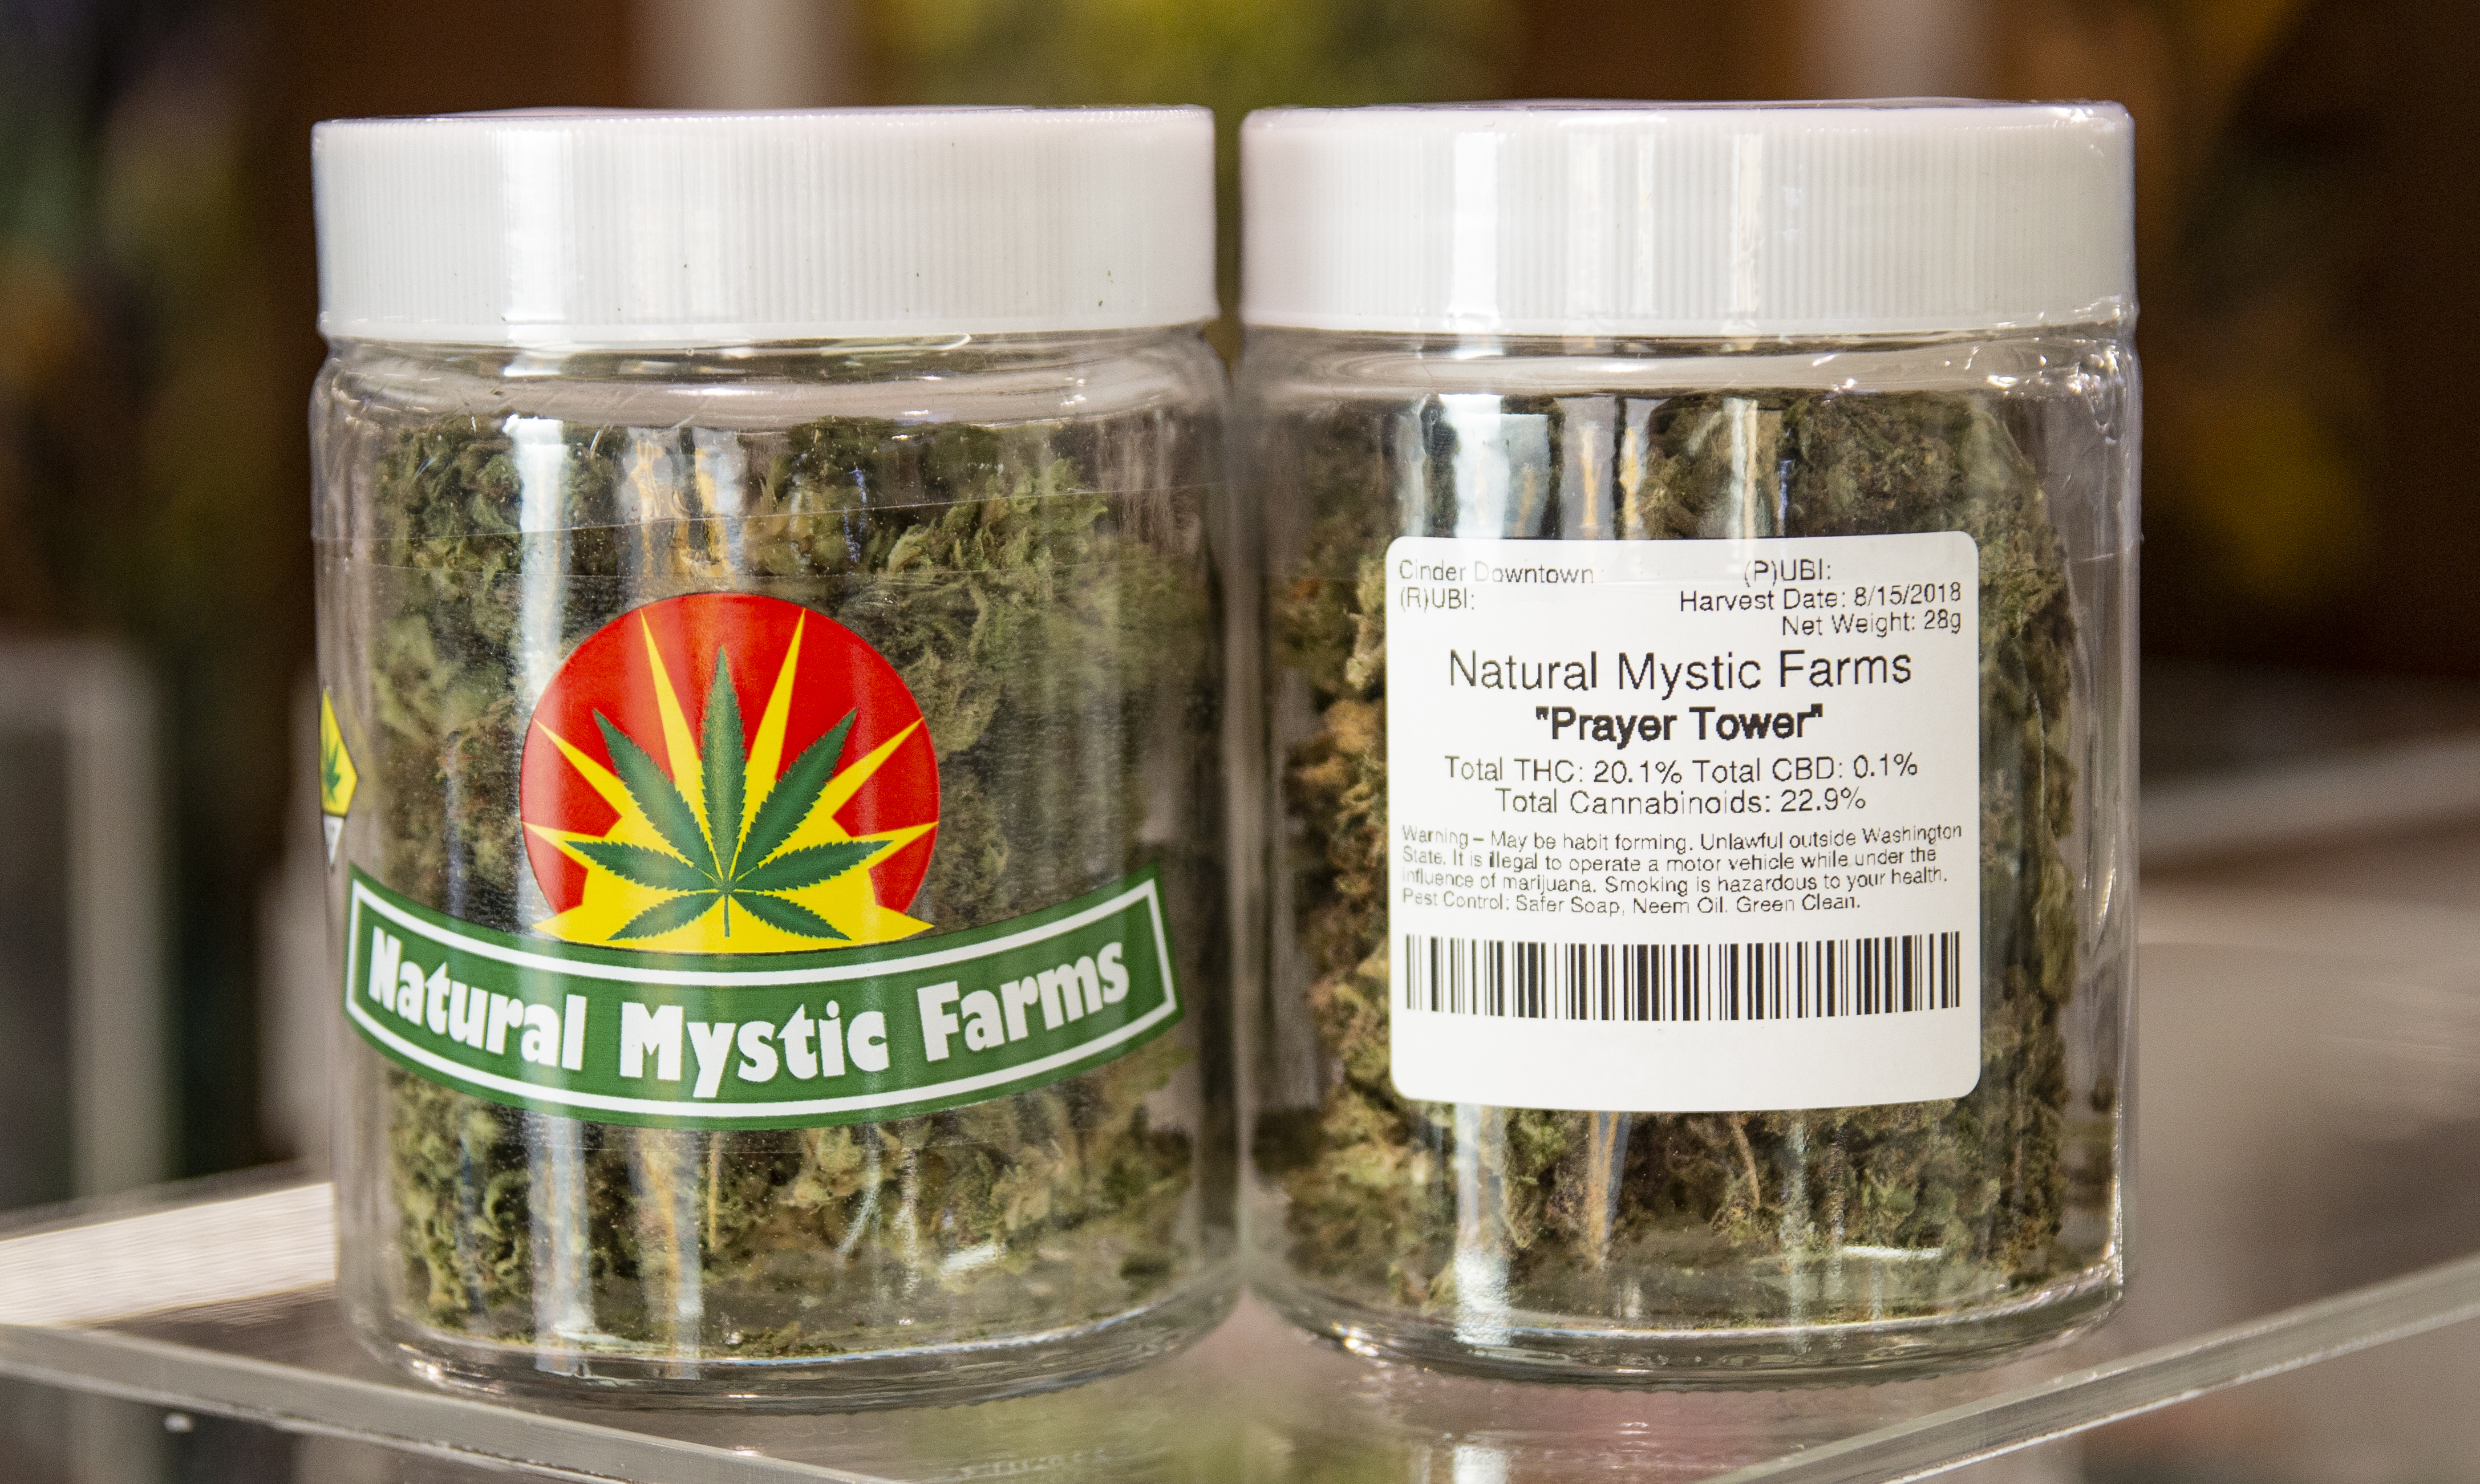 The Budtender's Review Corner: Prayer Tower from Natural Mystic Farms